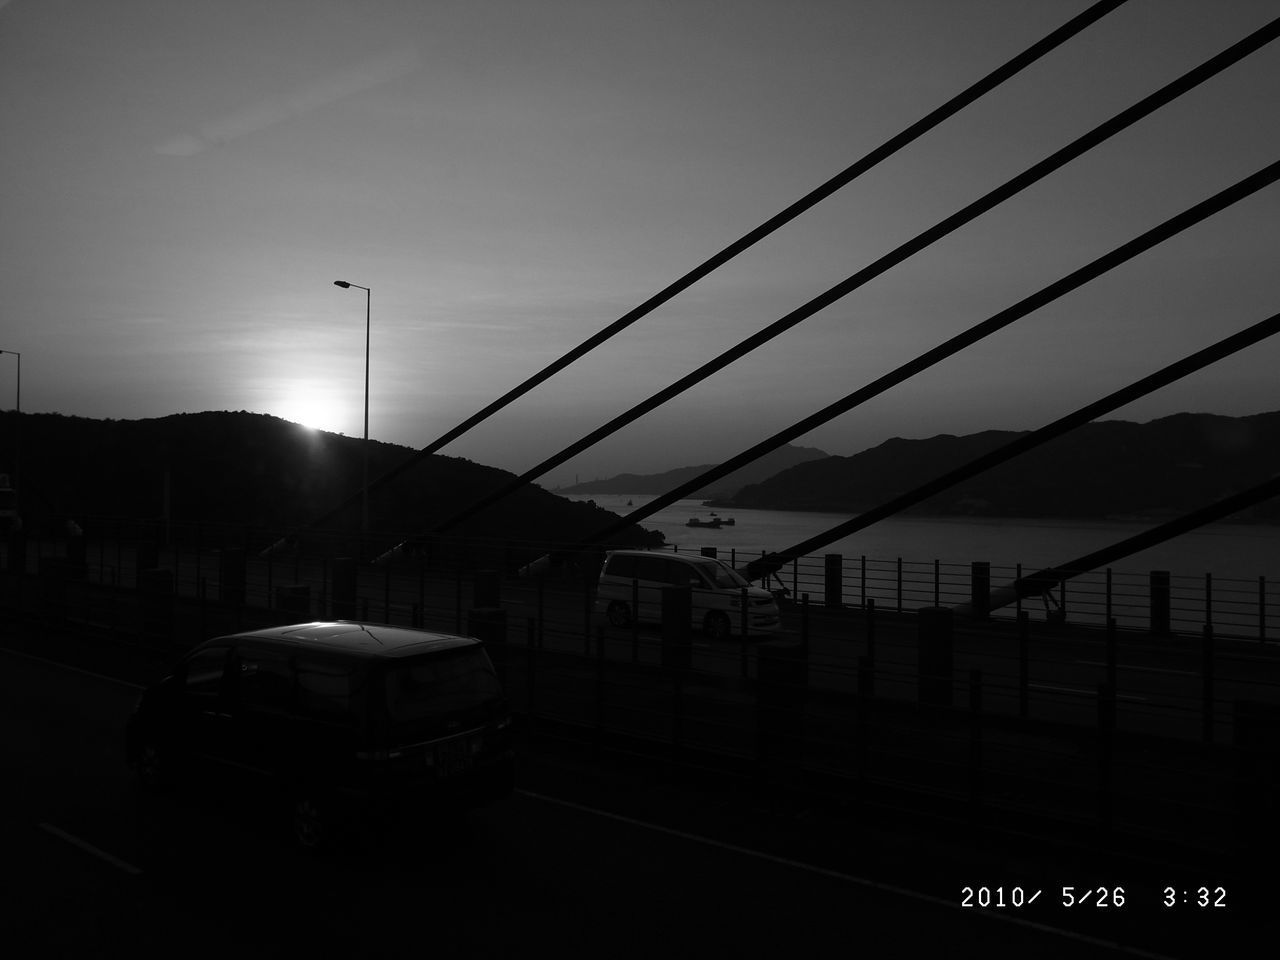 sky, transportation, mode of transportation, built structure, architecture, no people, nature, building exterior, cable, railing, land vehicle, car, sunset, street, outdoors, city, barrier, motor vehicle, sunlight, silhouette